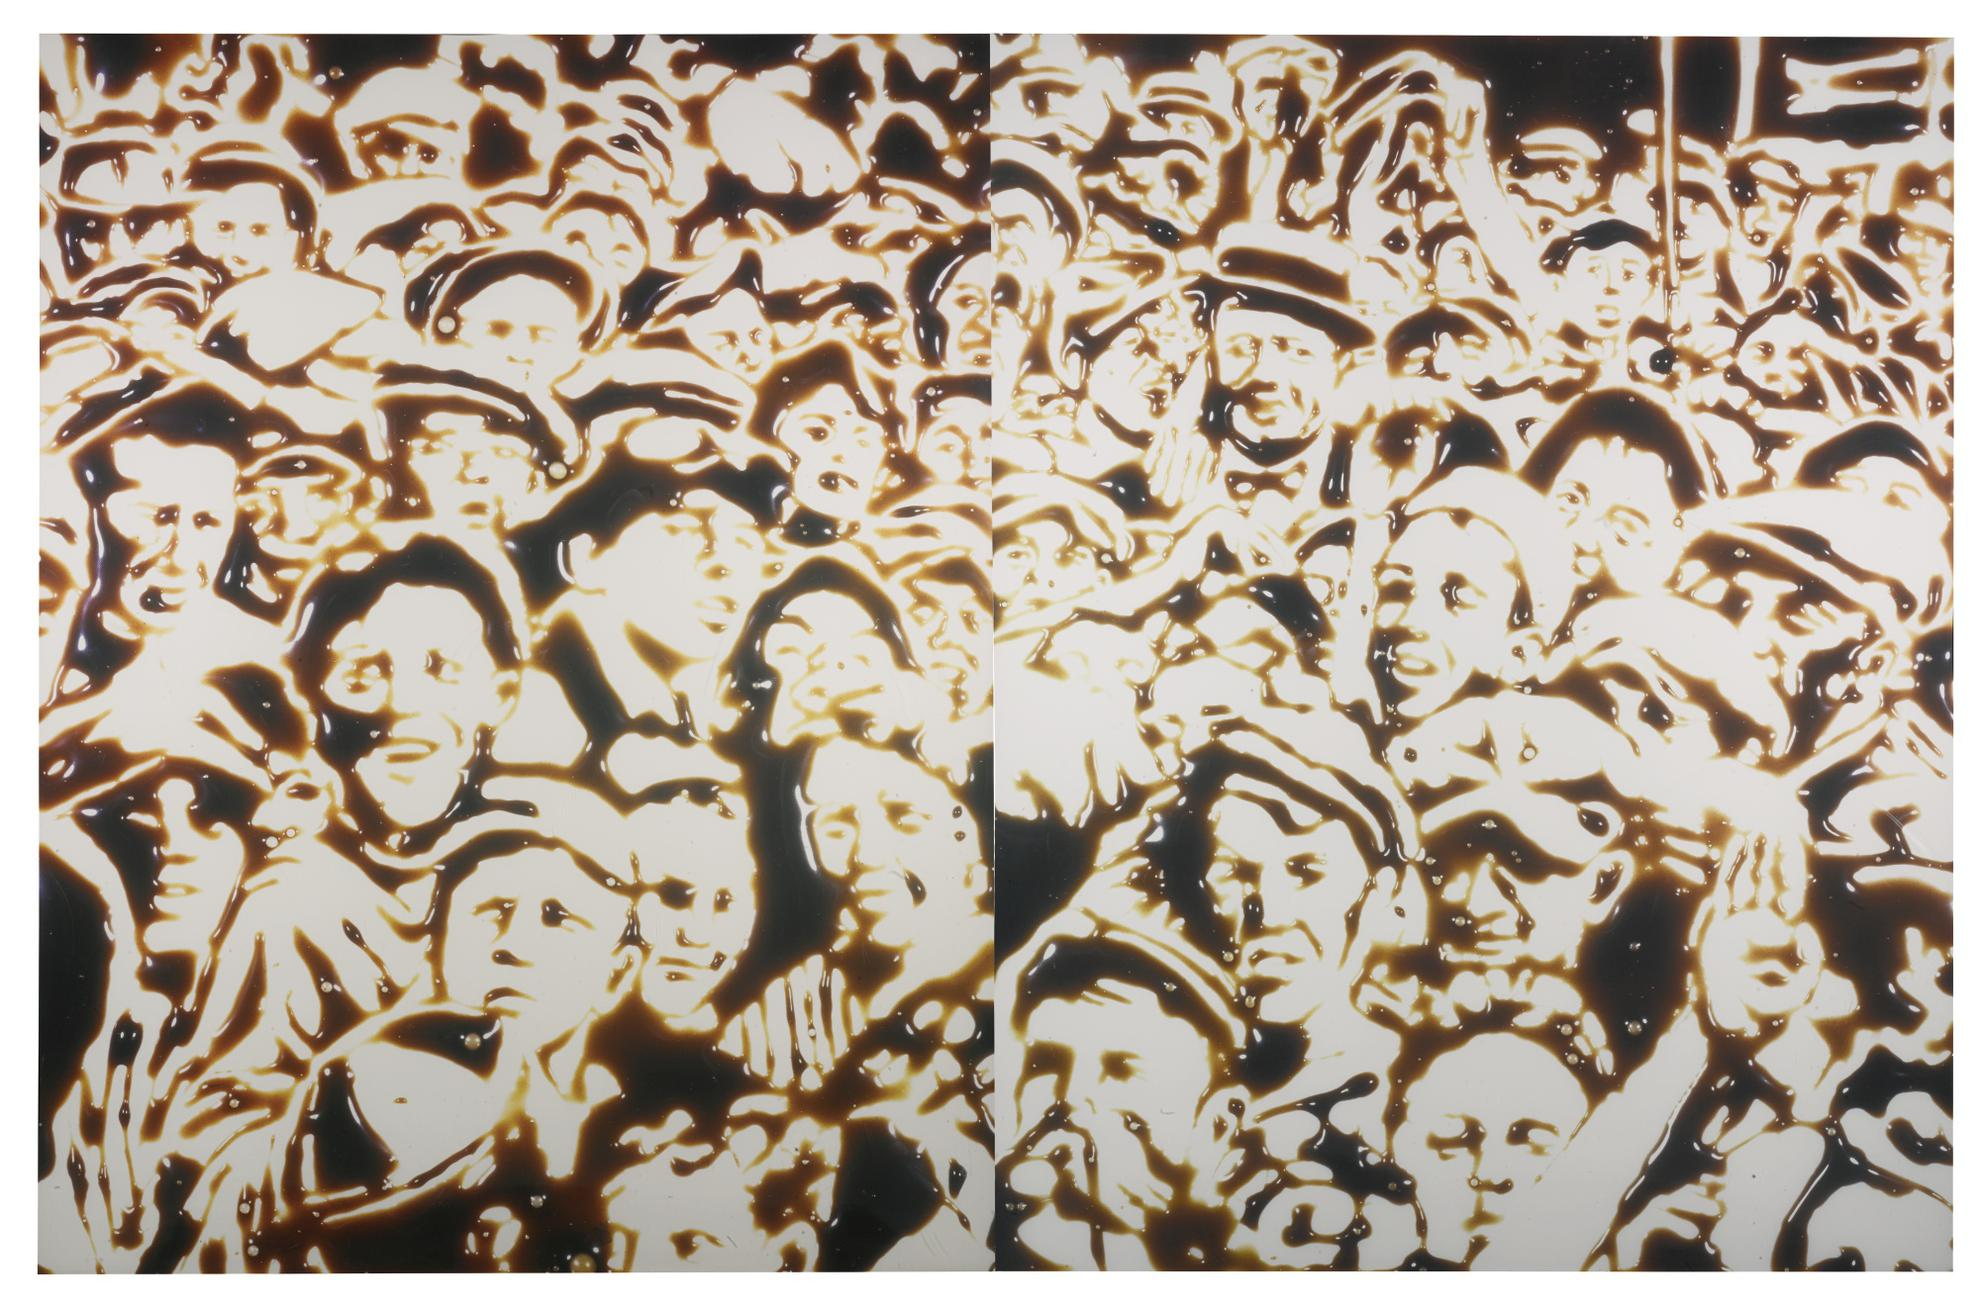 Vik Muniz-Summer 1999 (Chocolate Syrup Series)-1999